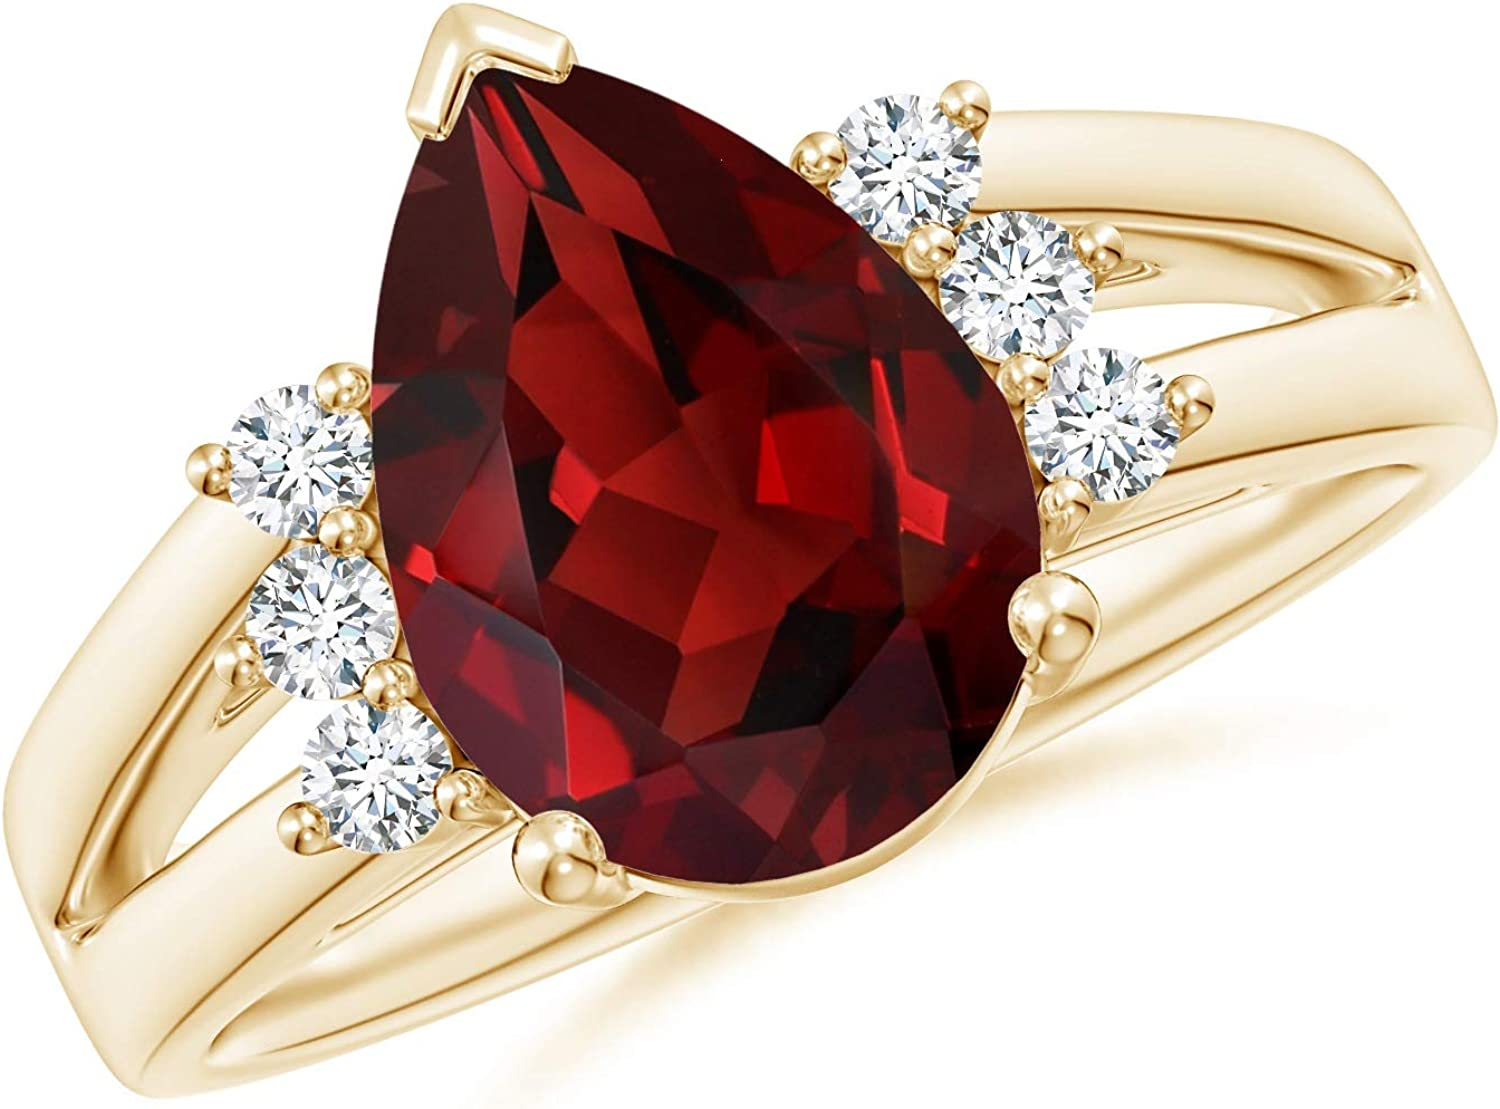 Natural Pear Garnet Ring with Accents Diamond Sales results No. 1 Gar Triple Ranking integrated 1st place 12x8mm